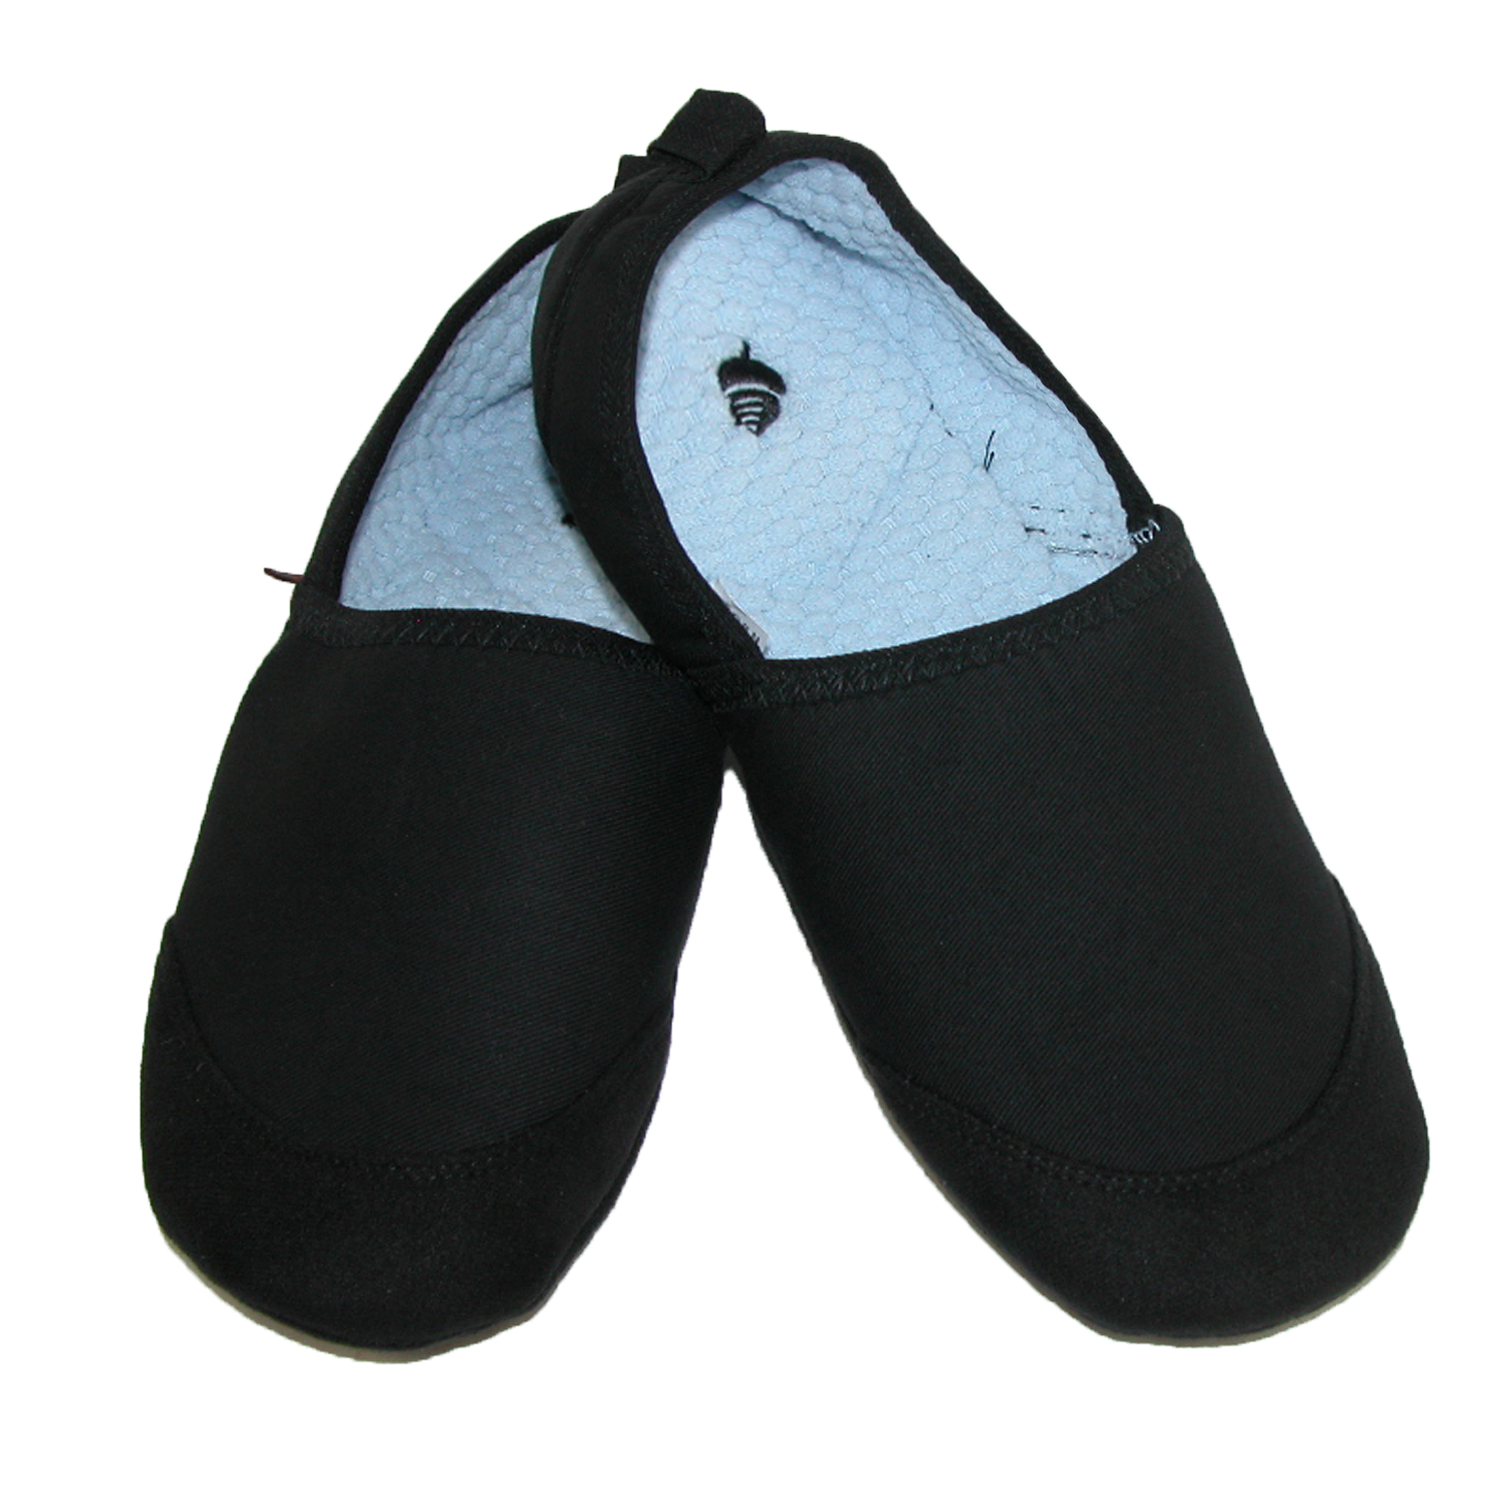 Acorn Size Xlarge Mens Pack and Go Tech Travel Slippers, Black